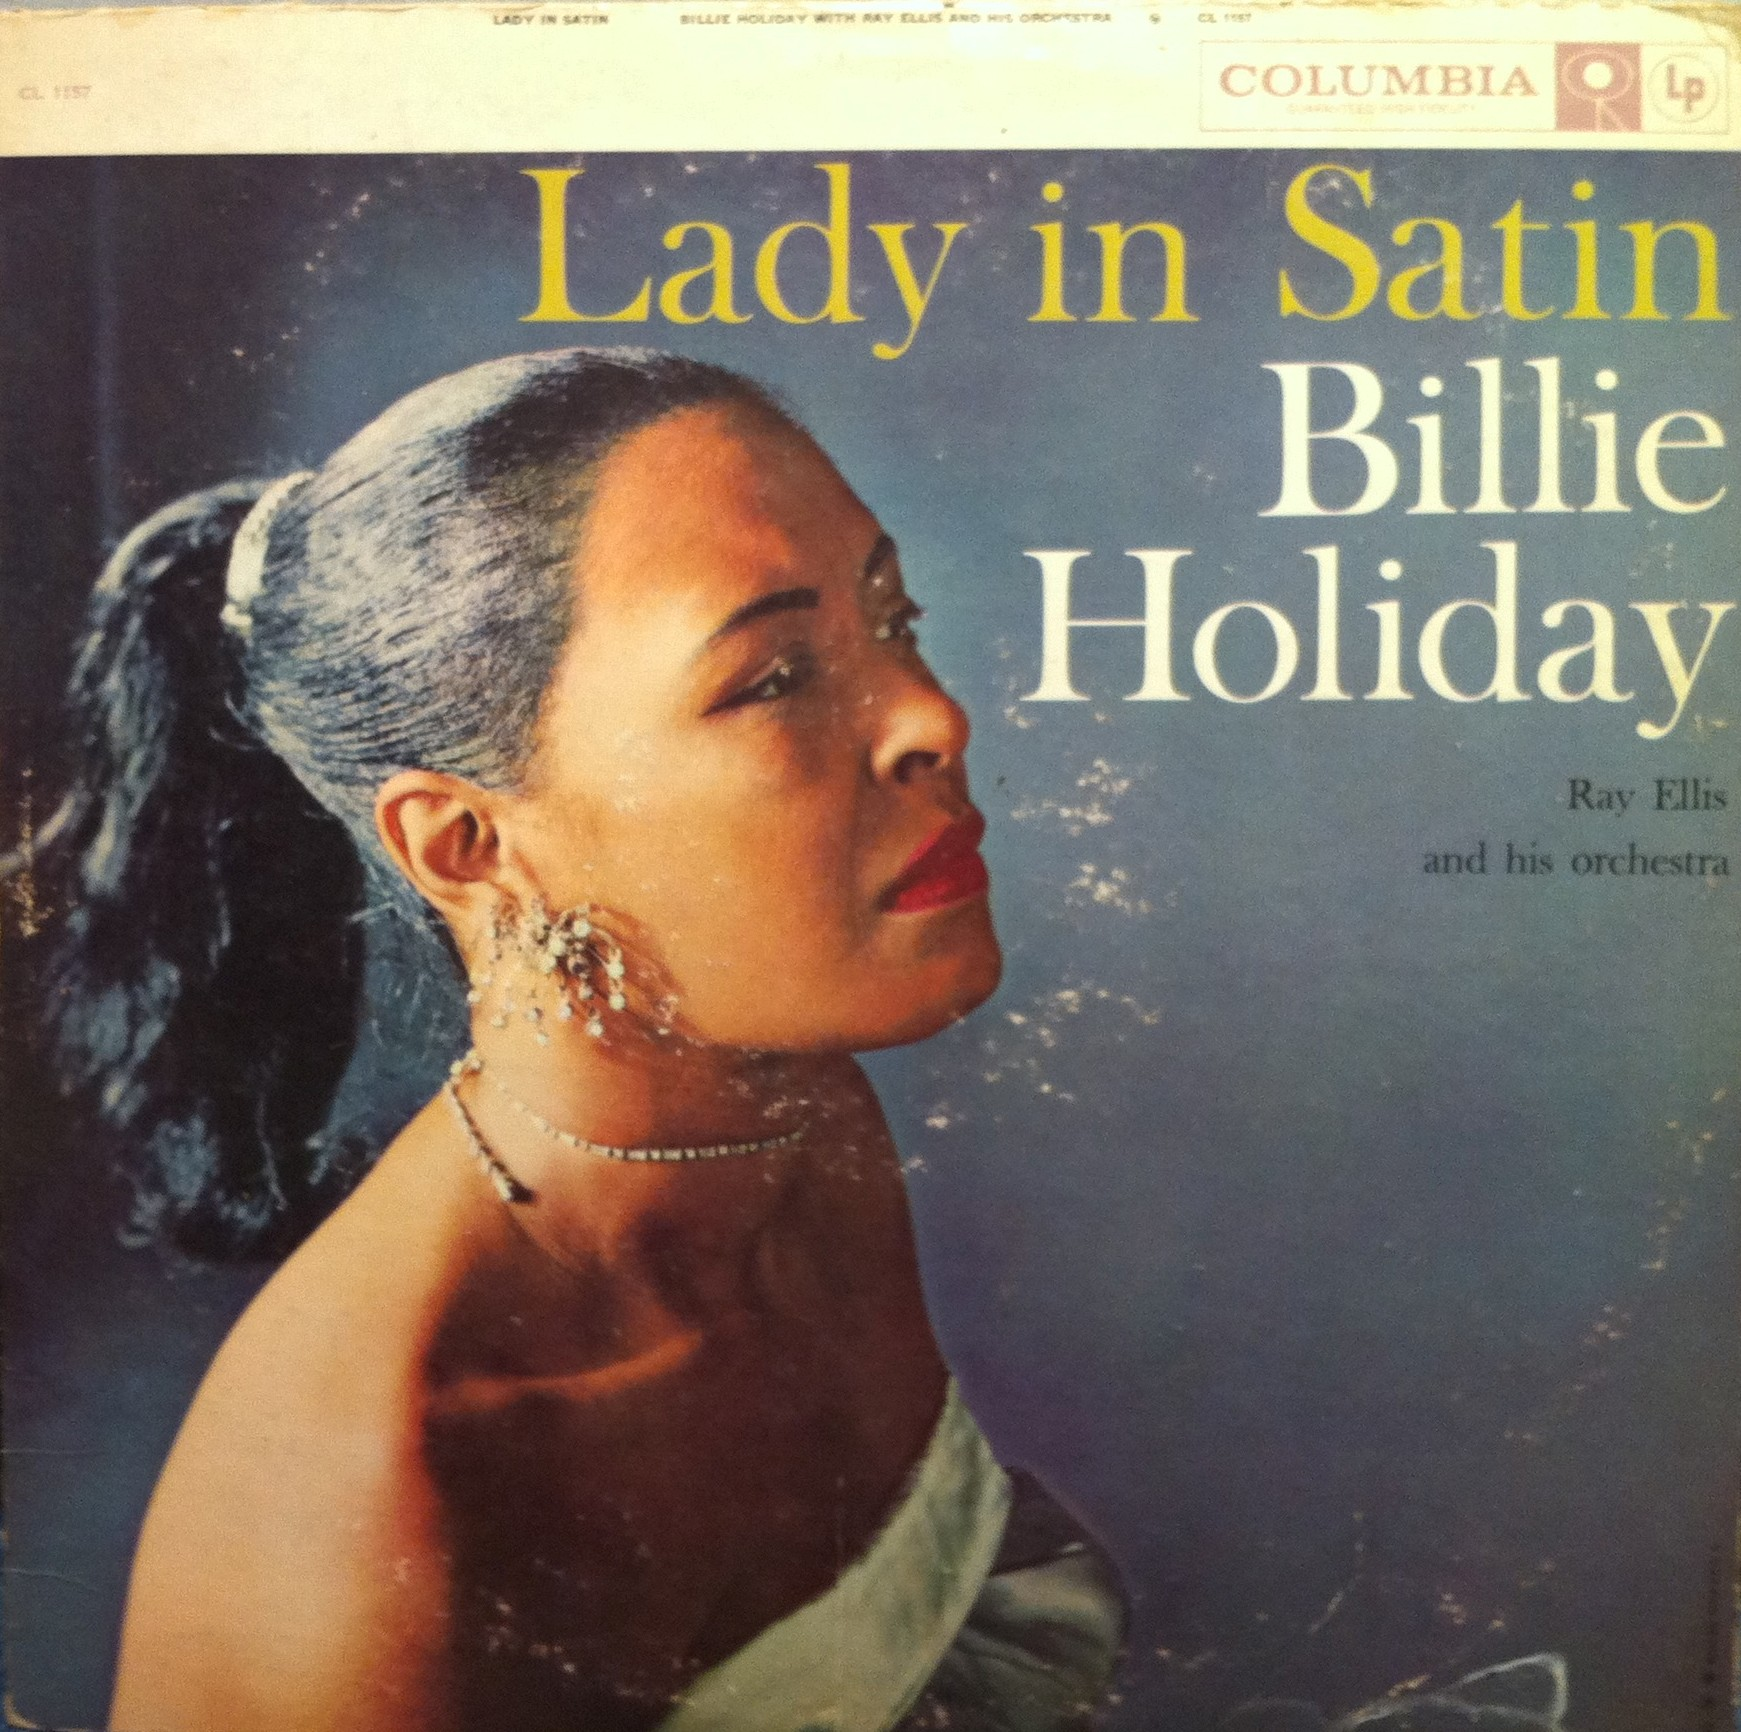 Billie Holiday Youve Changed Billie Holiday